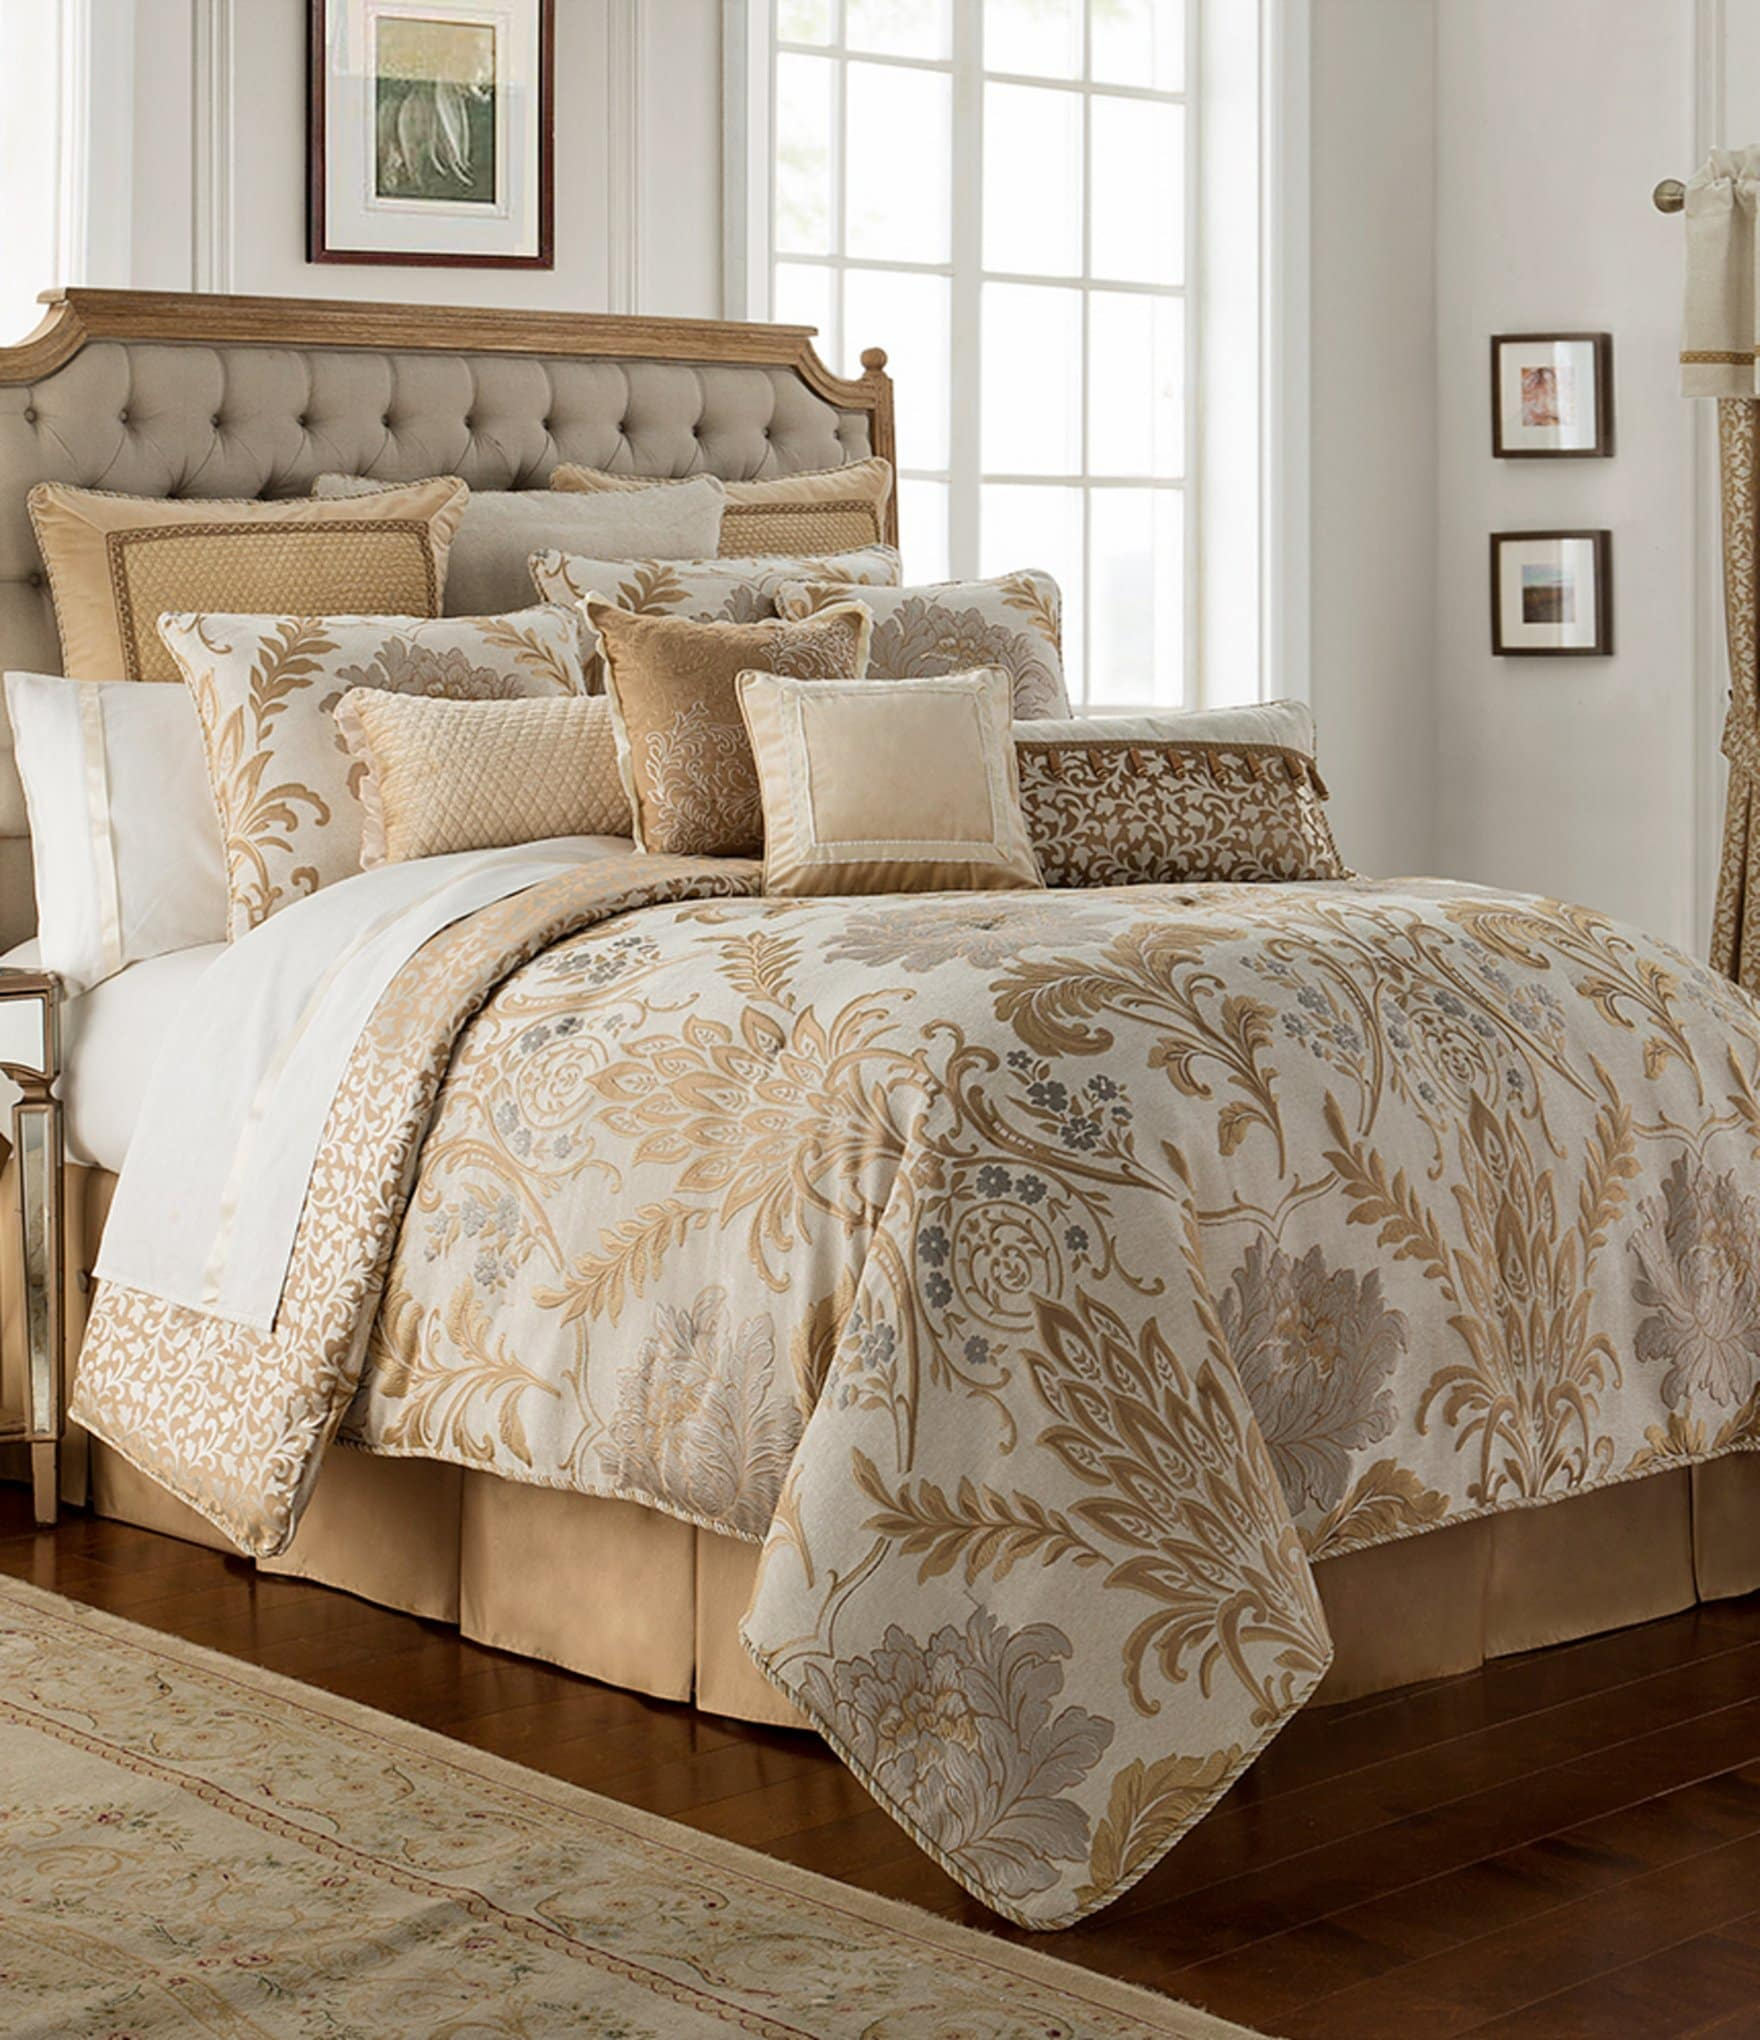 Waterford Ansonia Floral Jacquard Comforter Set Dillard S